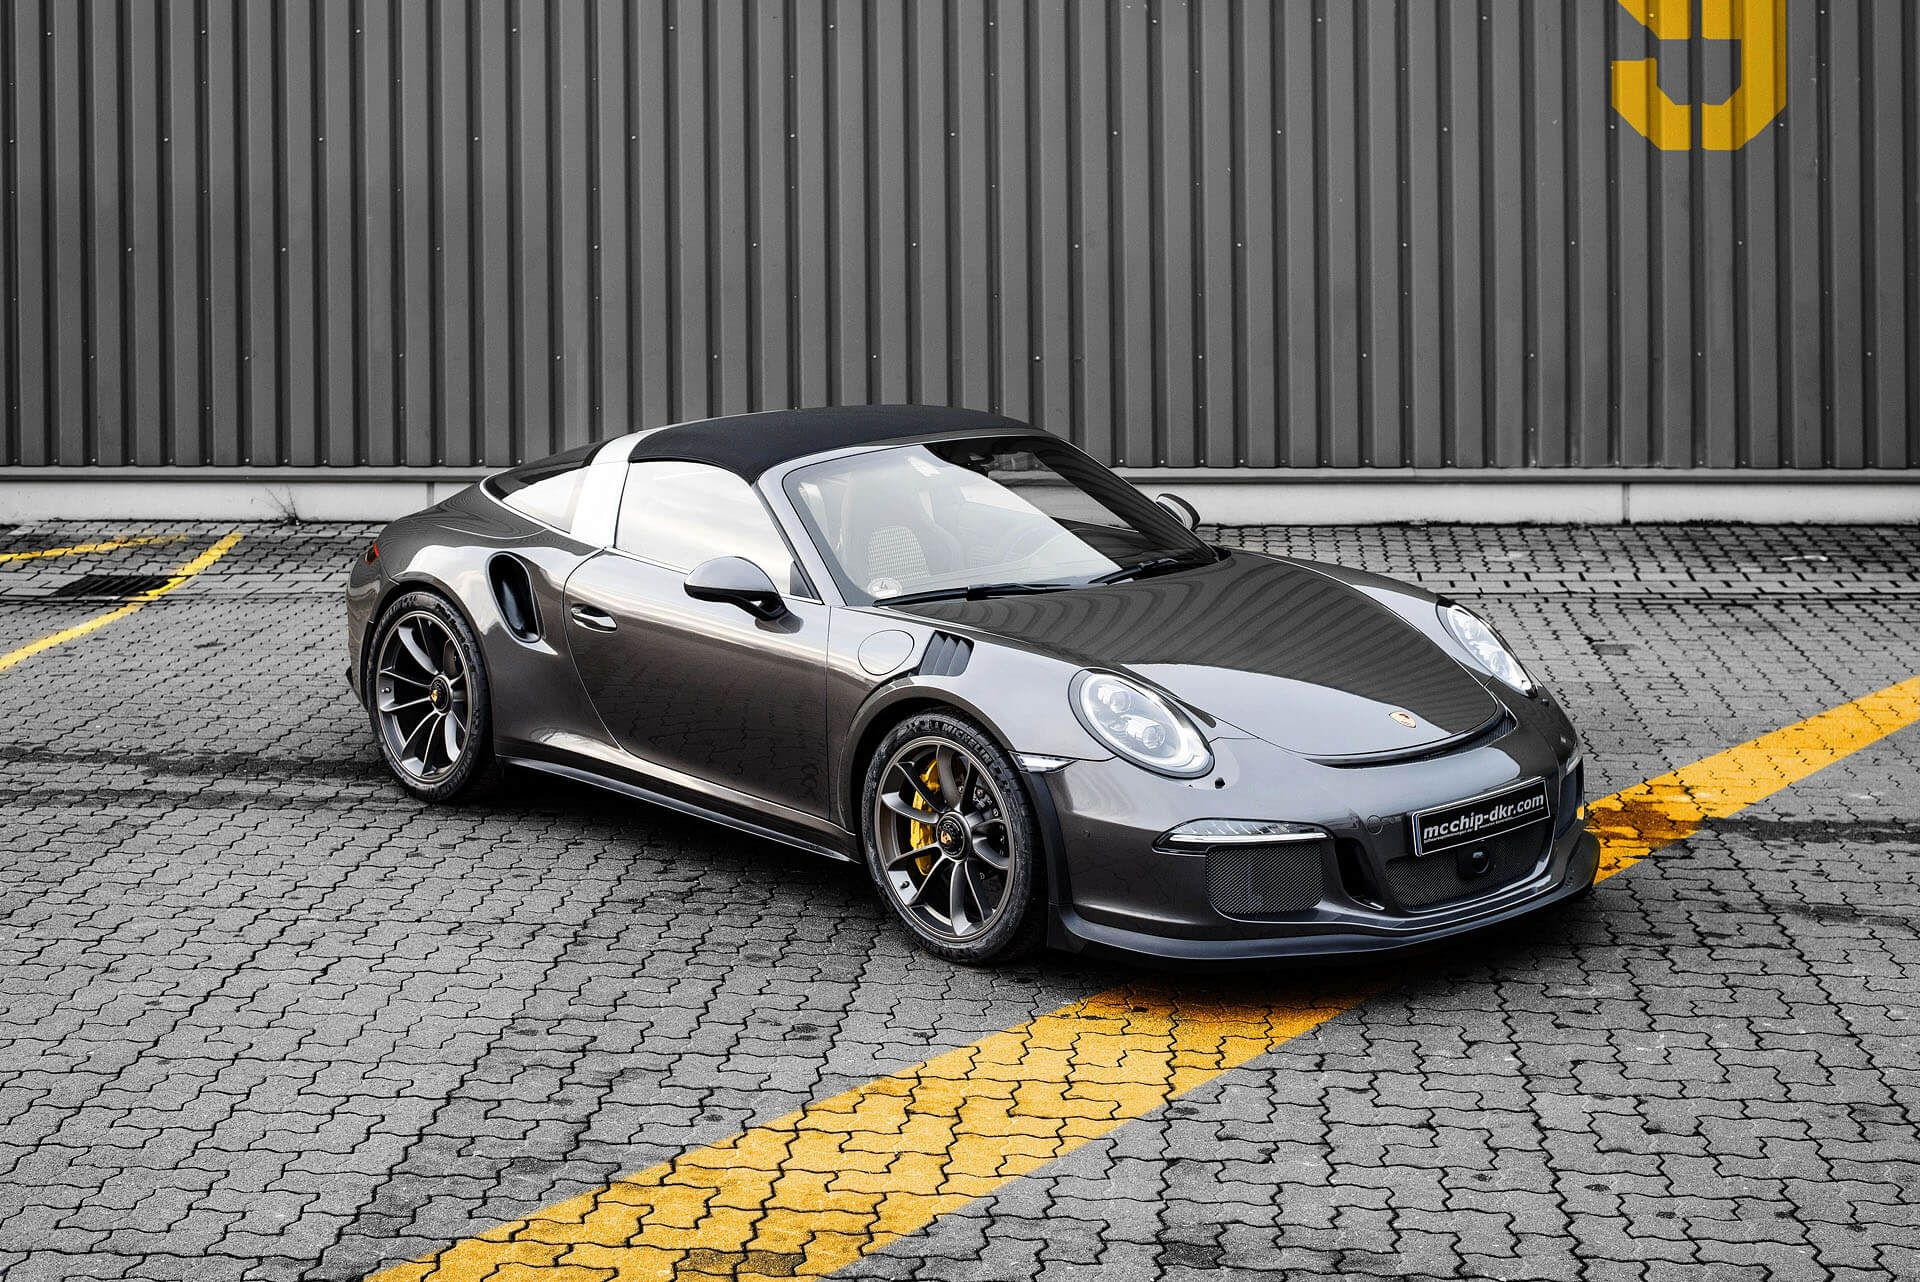 Porsche 991 Targa Gt3 Rs By Mcchip Dkr Is The Definition